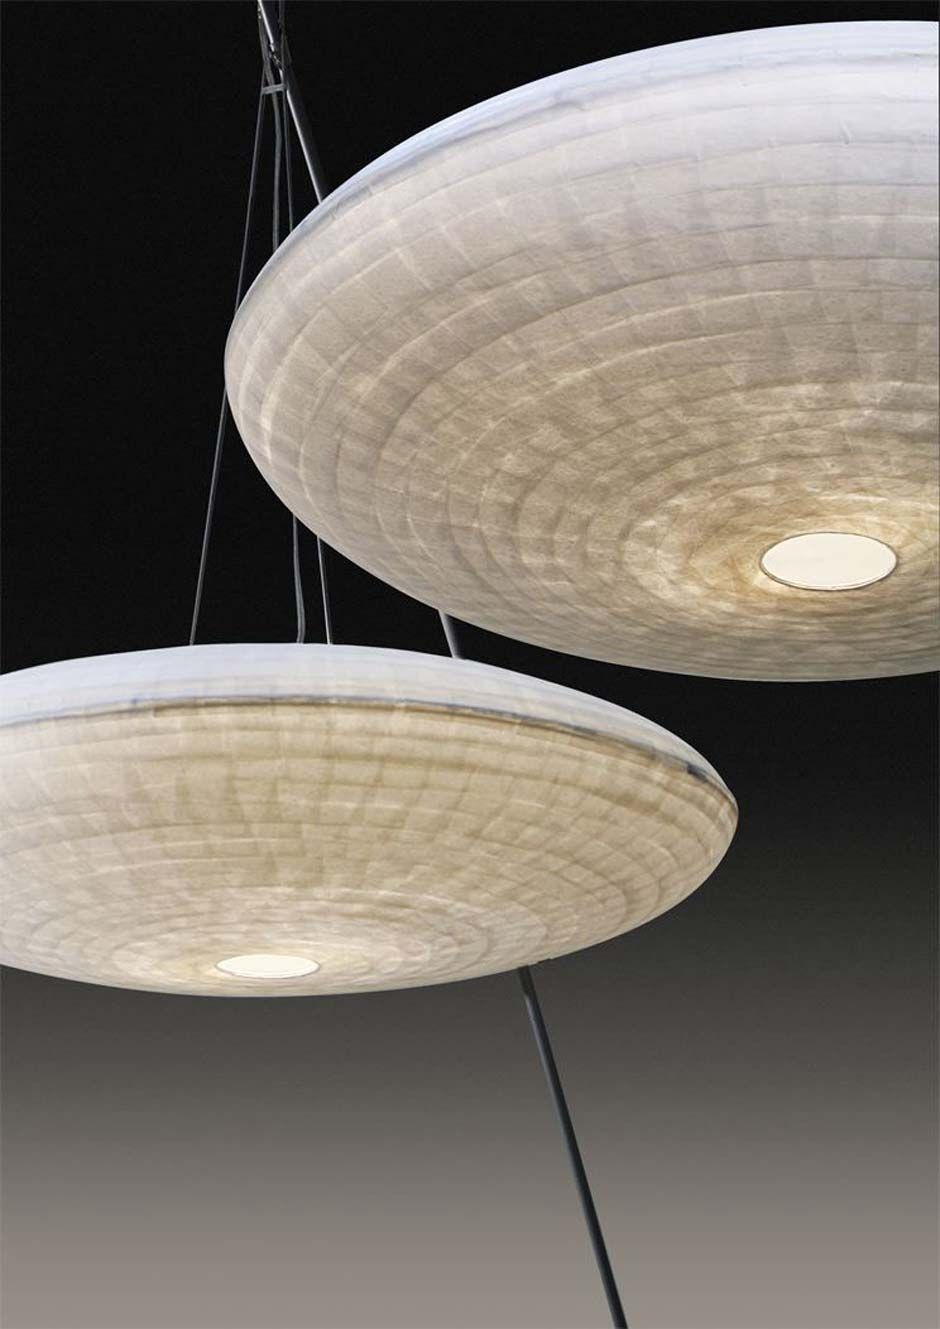 Zen luminaire suspension grand mod le en papier japonais for Modele luminaire suspension